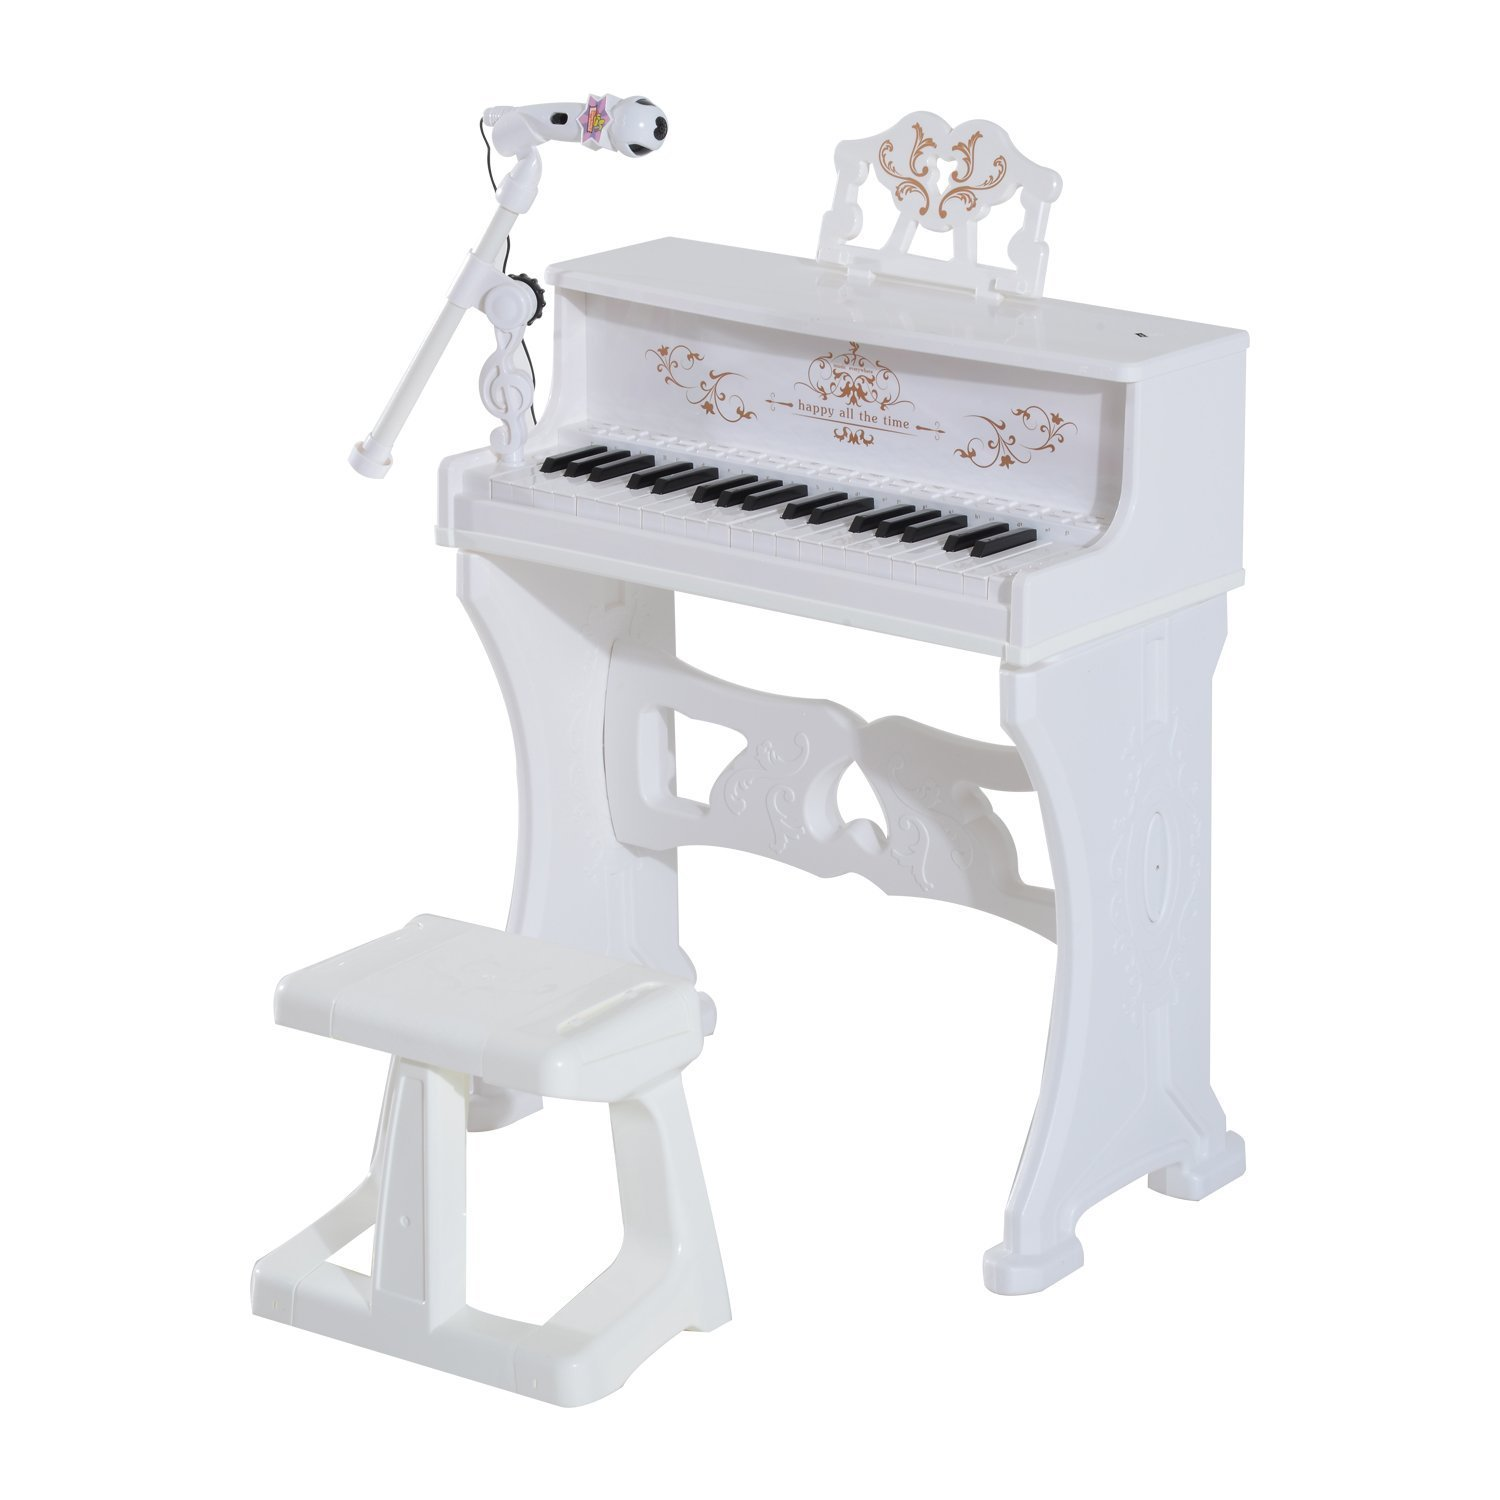 Qaba 32 Key Princess Electronic Kids Keyboard with Stool and Microphone - White by Qaba